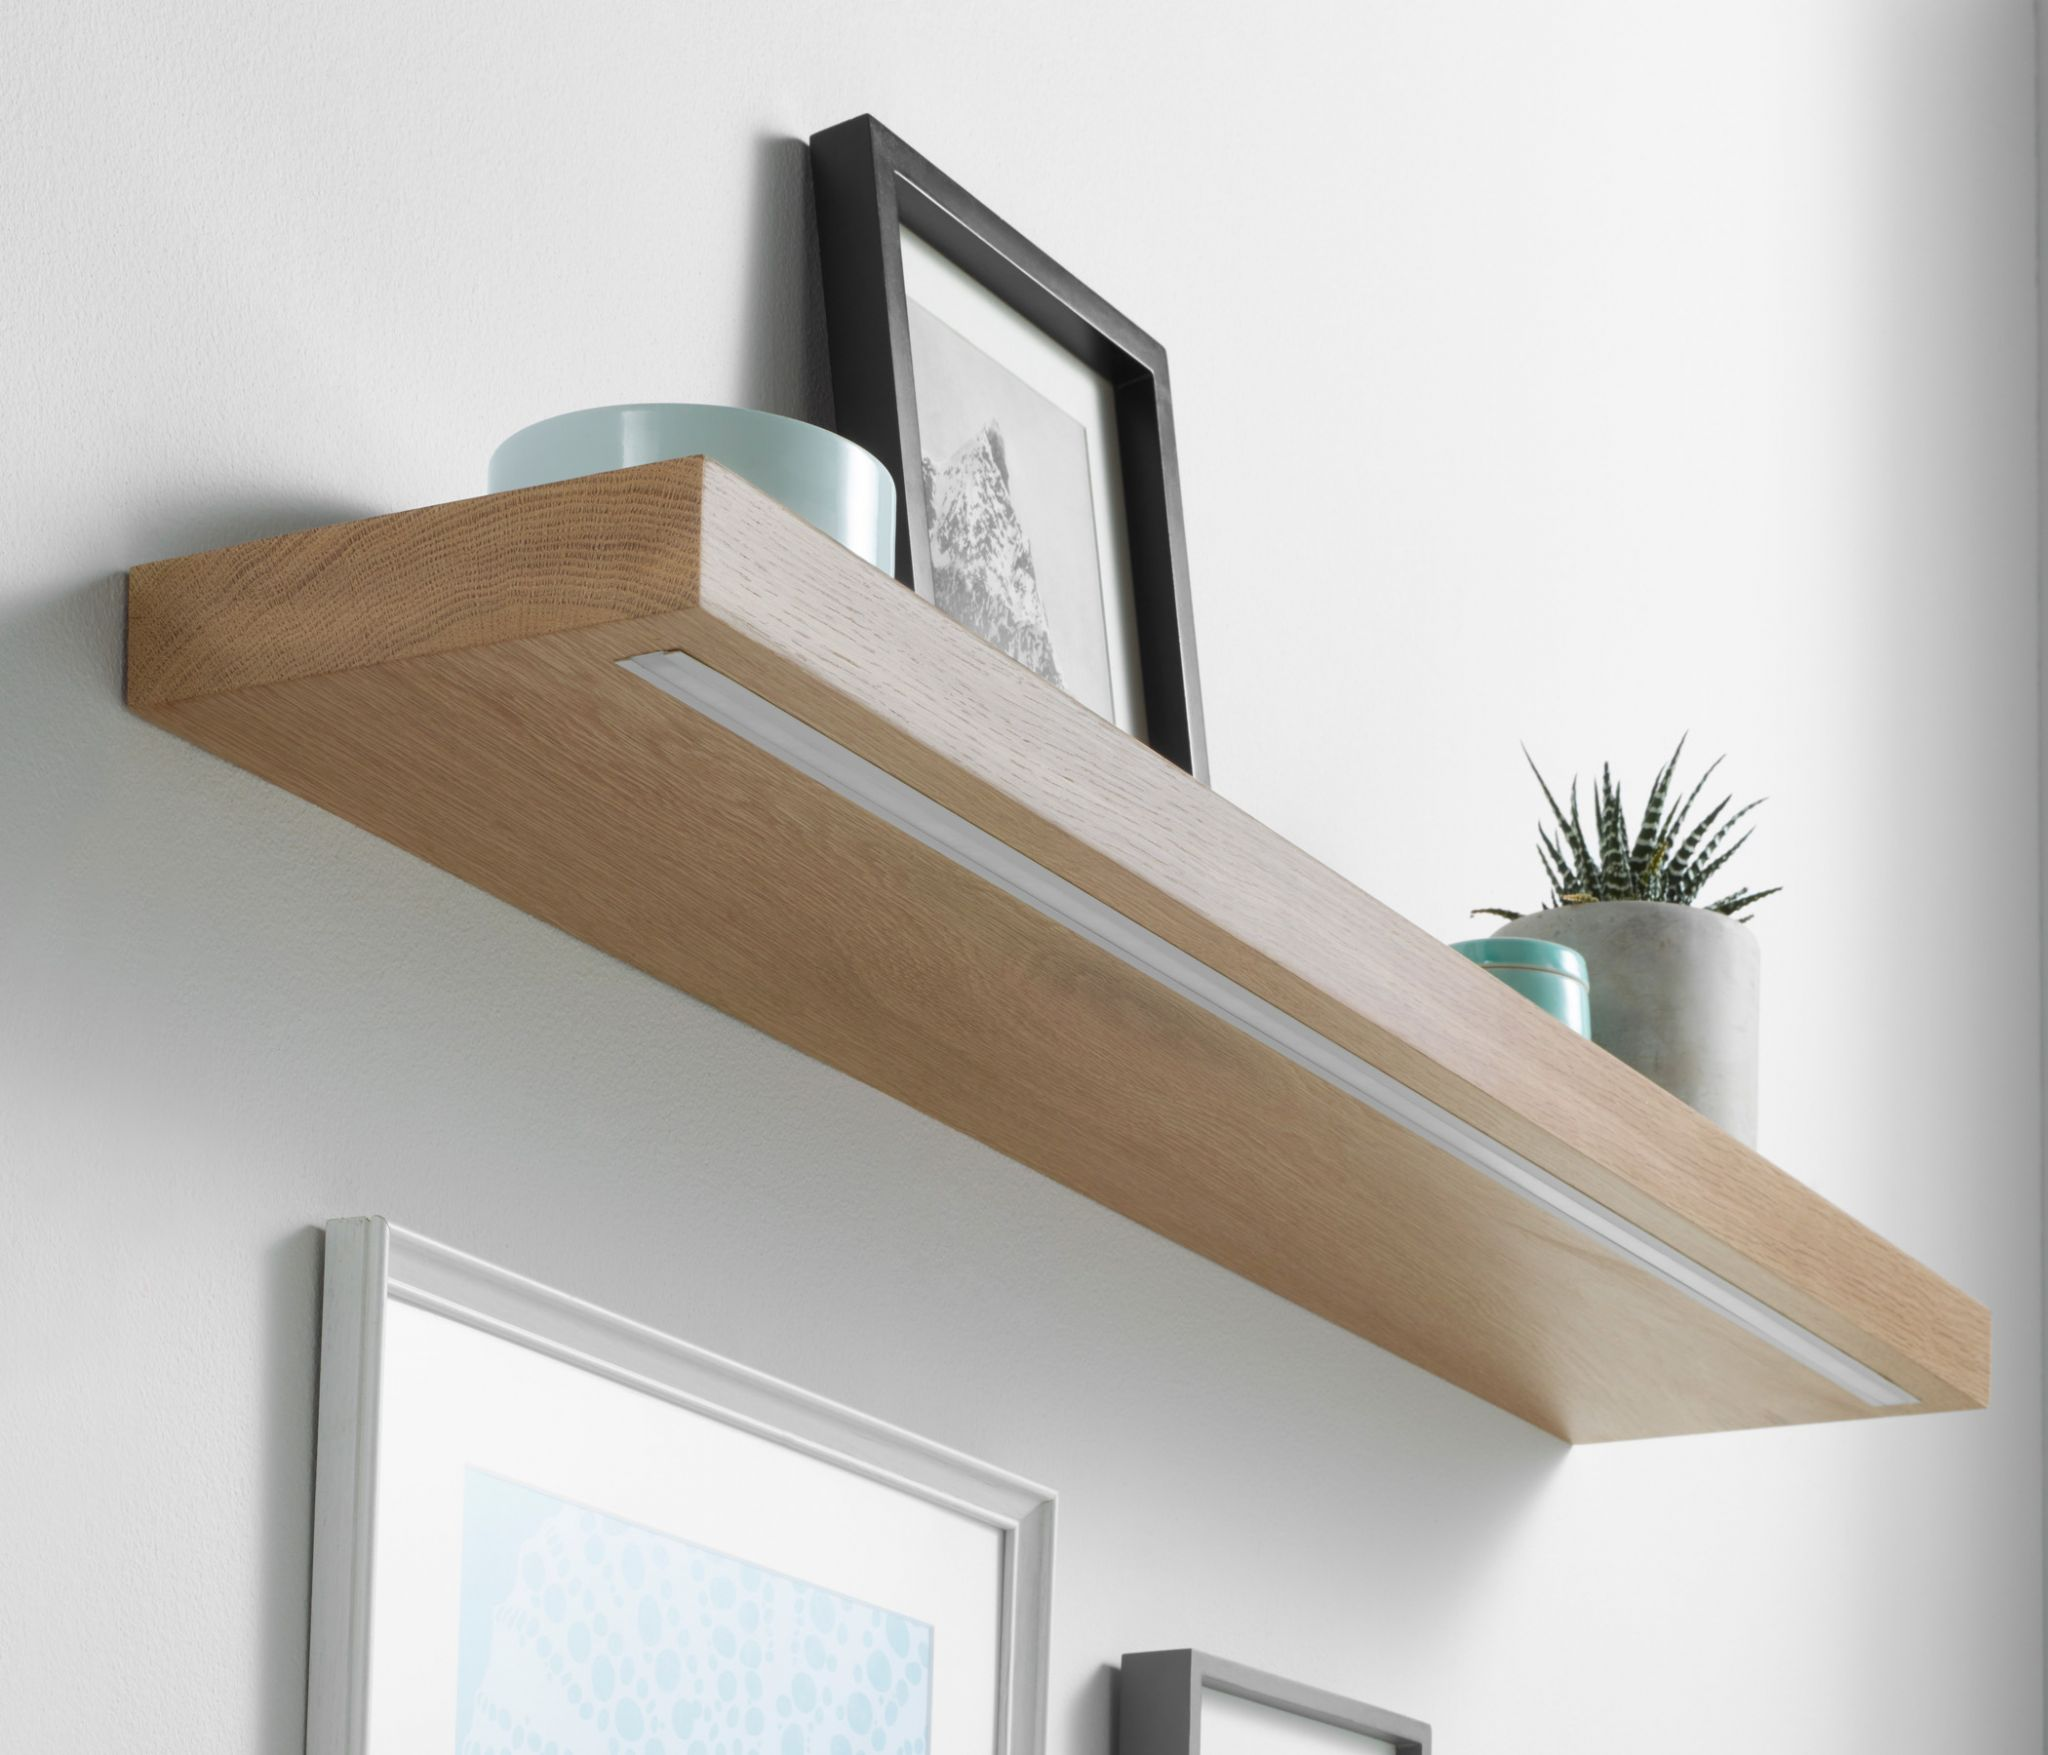 Solid White Oak Floating Shelf 40x145mm With Warm White